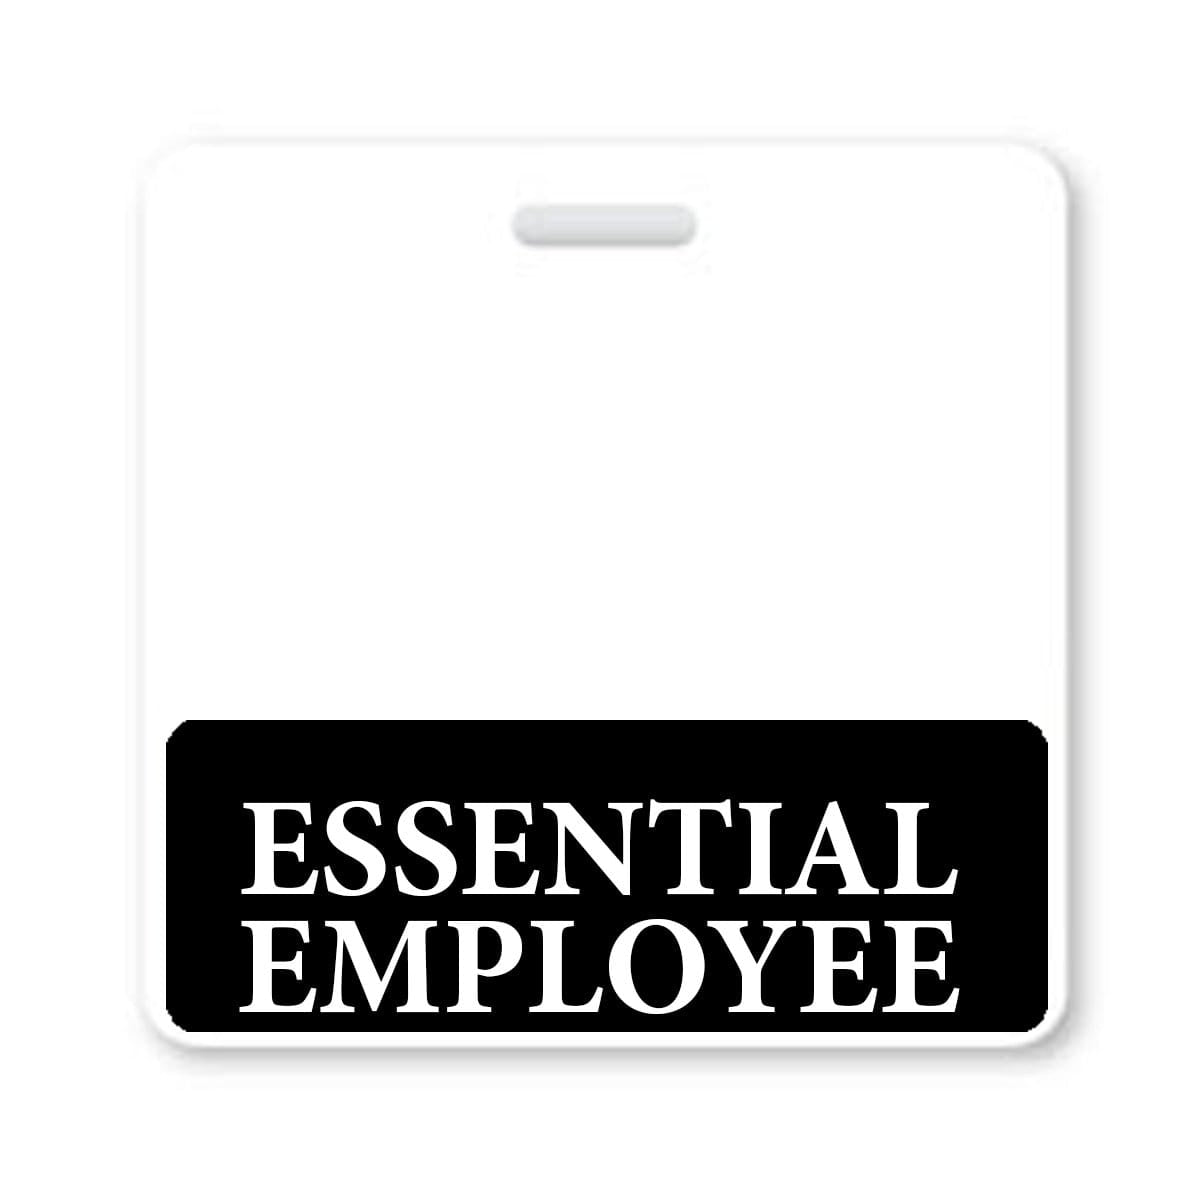 Reasons Why Essential Employee Id Cards Are Important during Covid-19